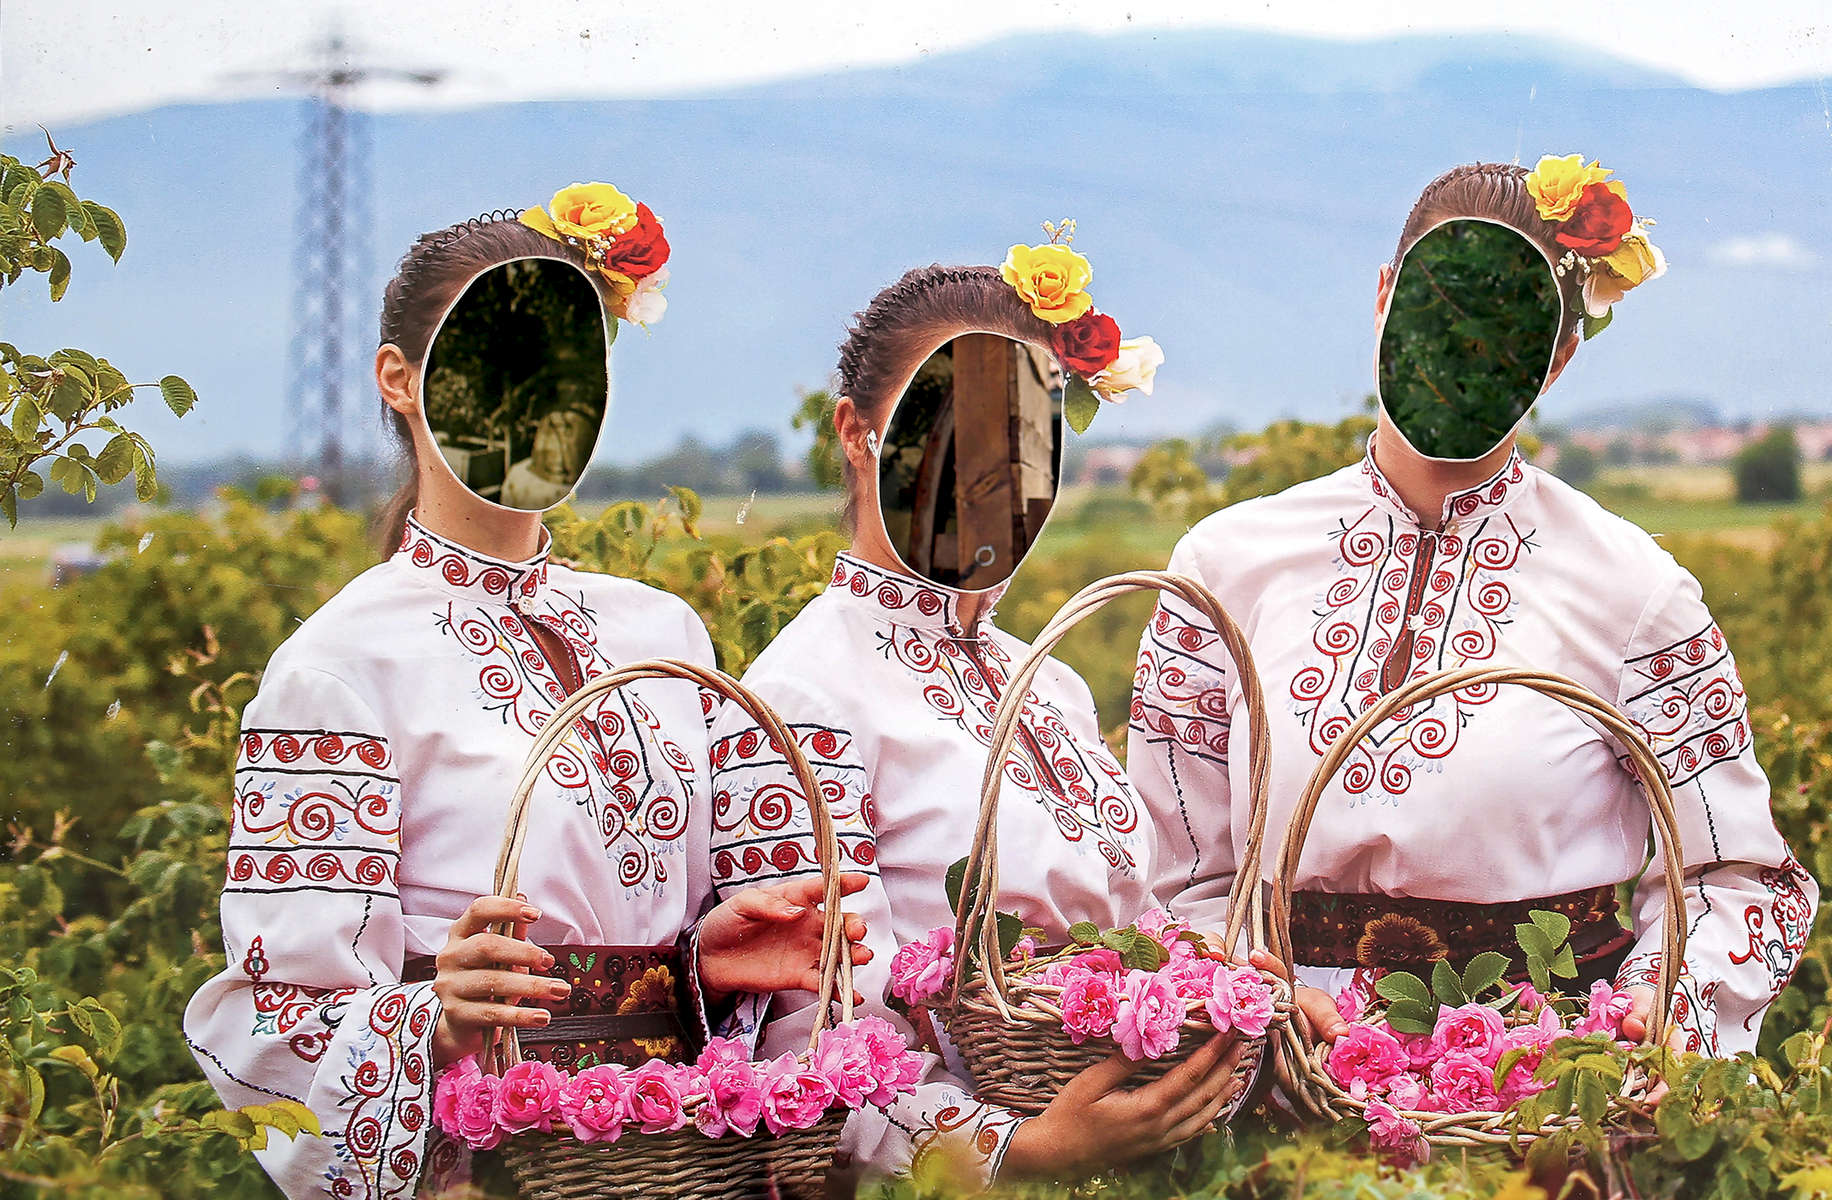 Entering the Institute for Roses and Aromatic Plants, a research and agriculture academy in Kazanlak, a town in The Rose Valley of Bulgaria, on June 04, 2018. The life-size pictures are meant for tourists who want to photograph themselves within the facial cutouts.Photo by: Yana Paskova for National Geographic Traveler